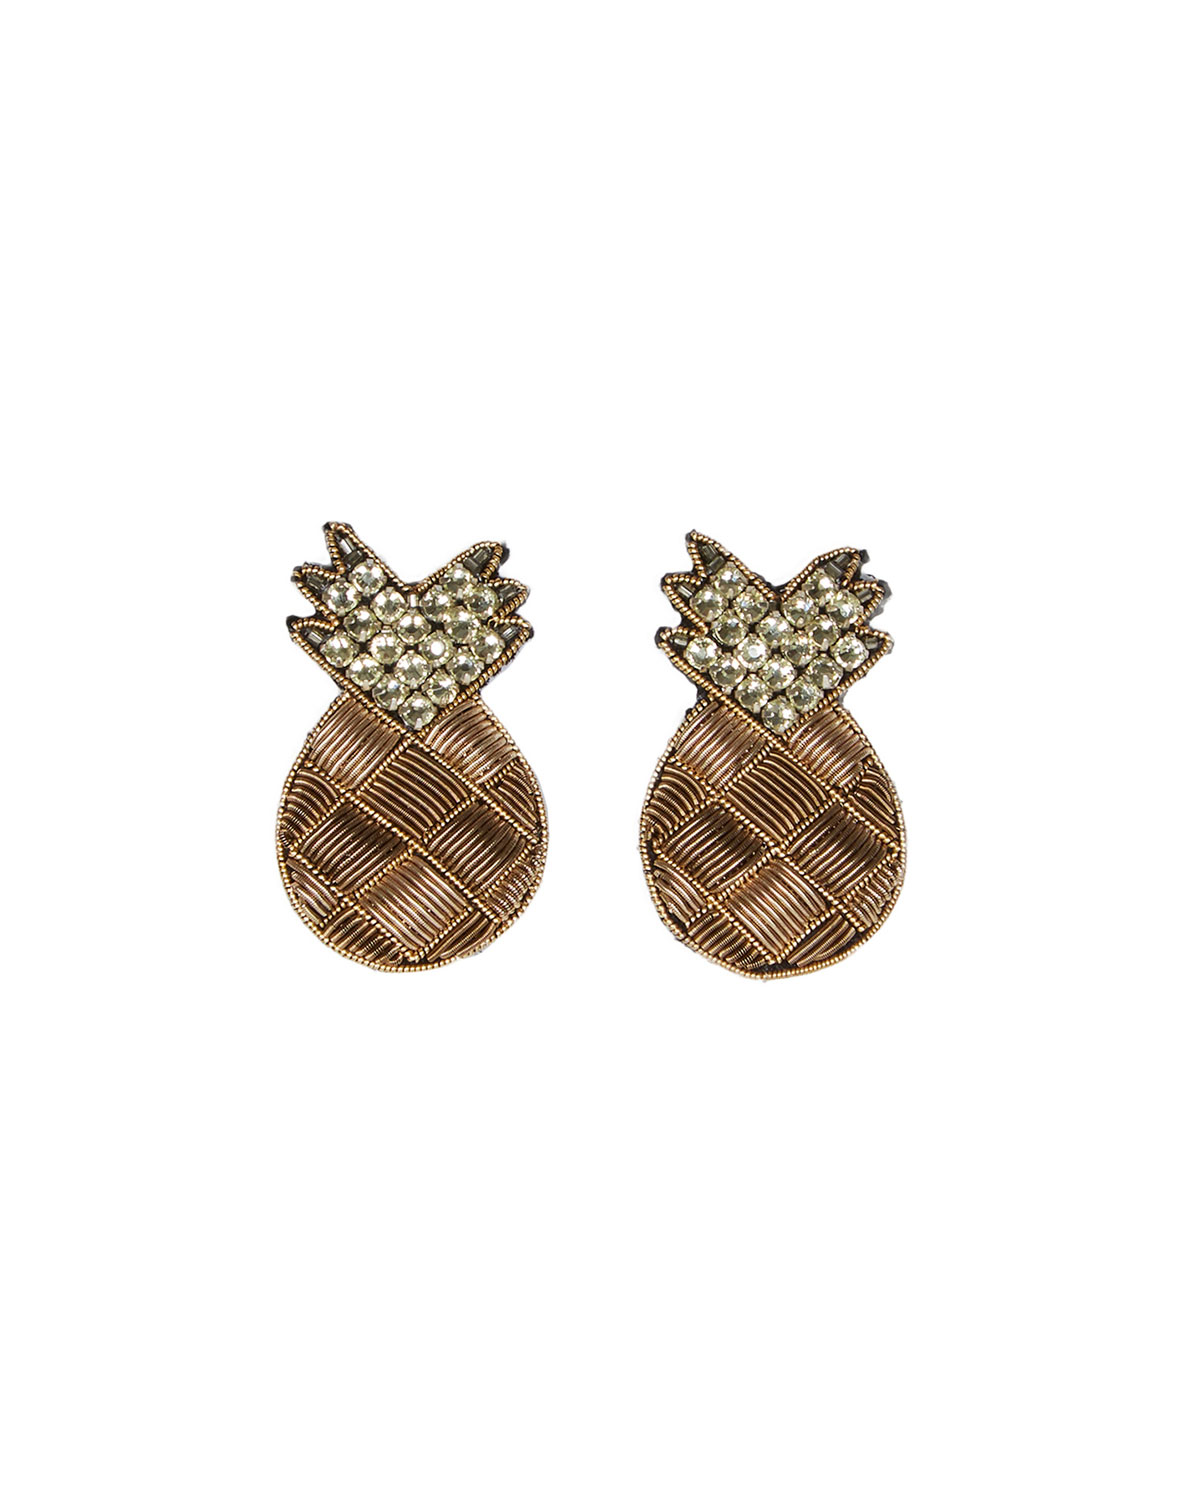 Mignonne Gavigan PINEAPPLE STUD EARRINGS